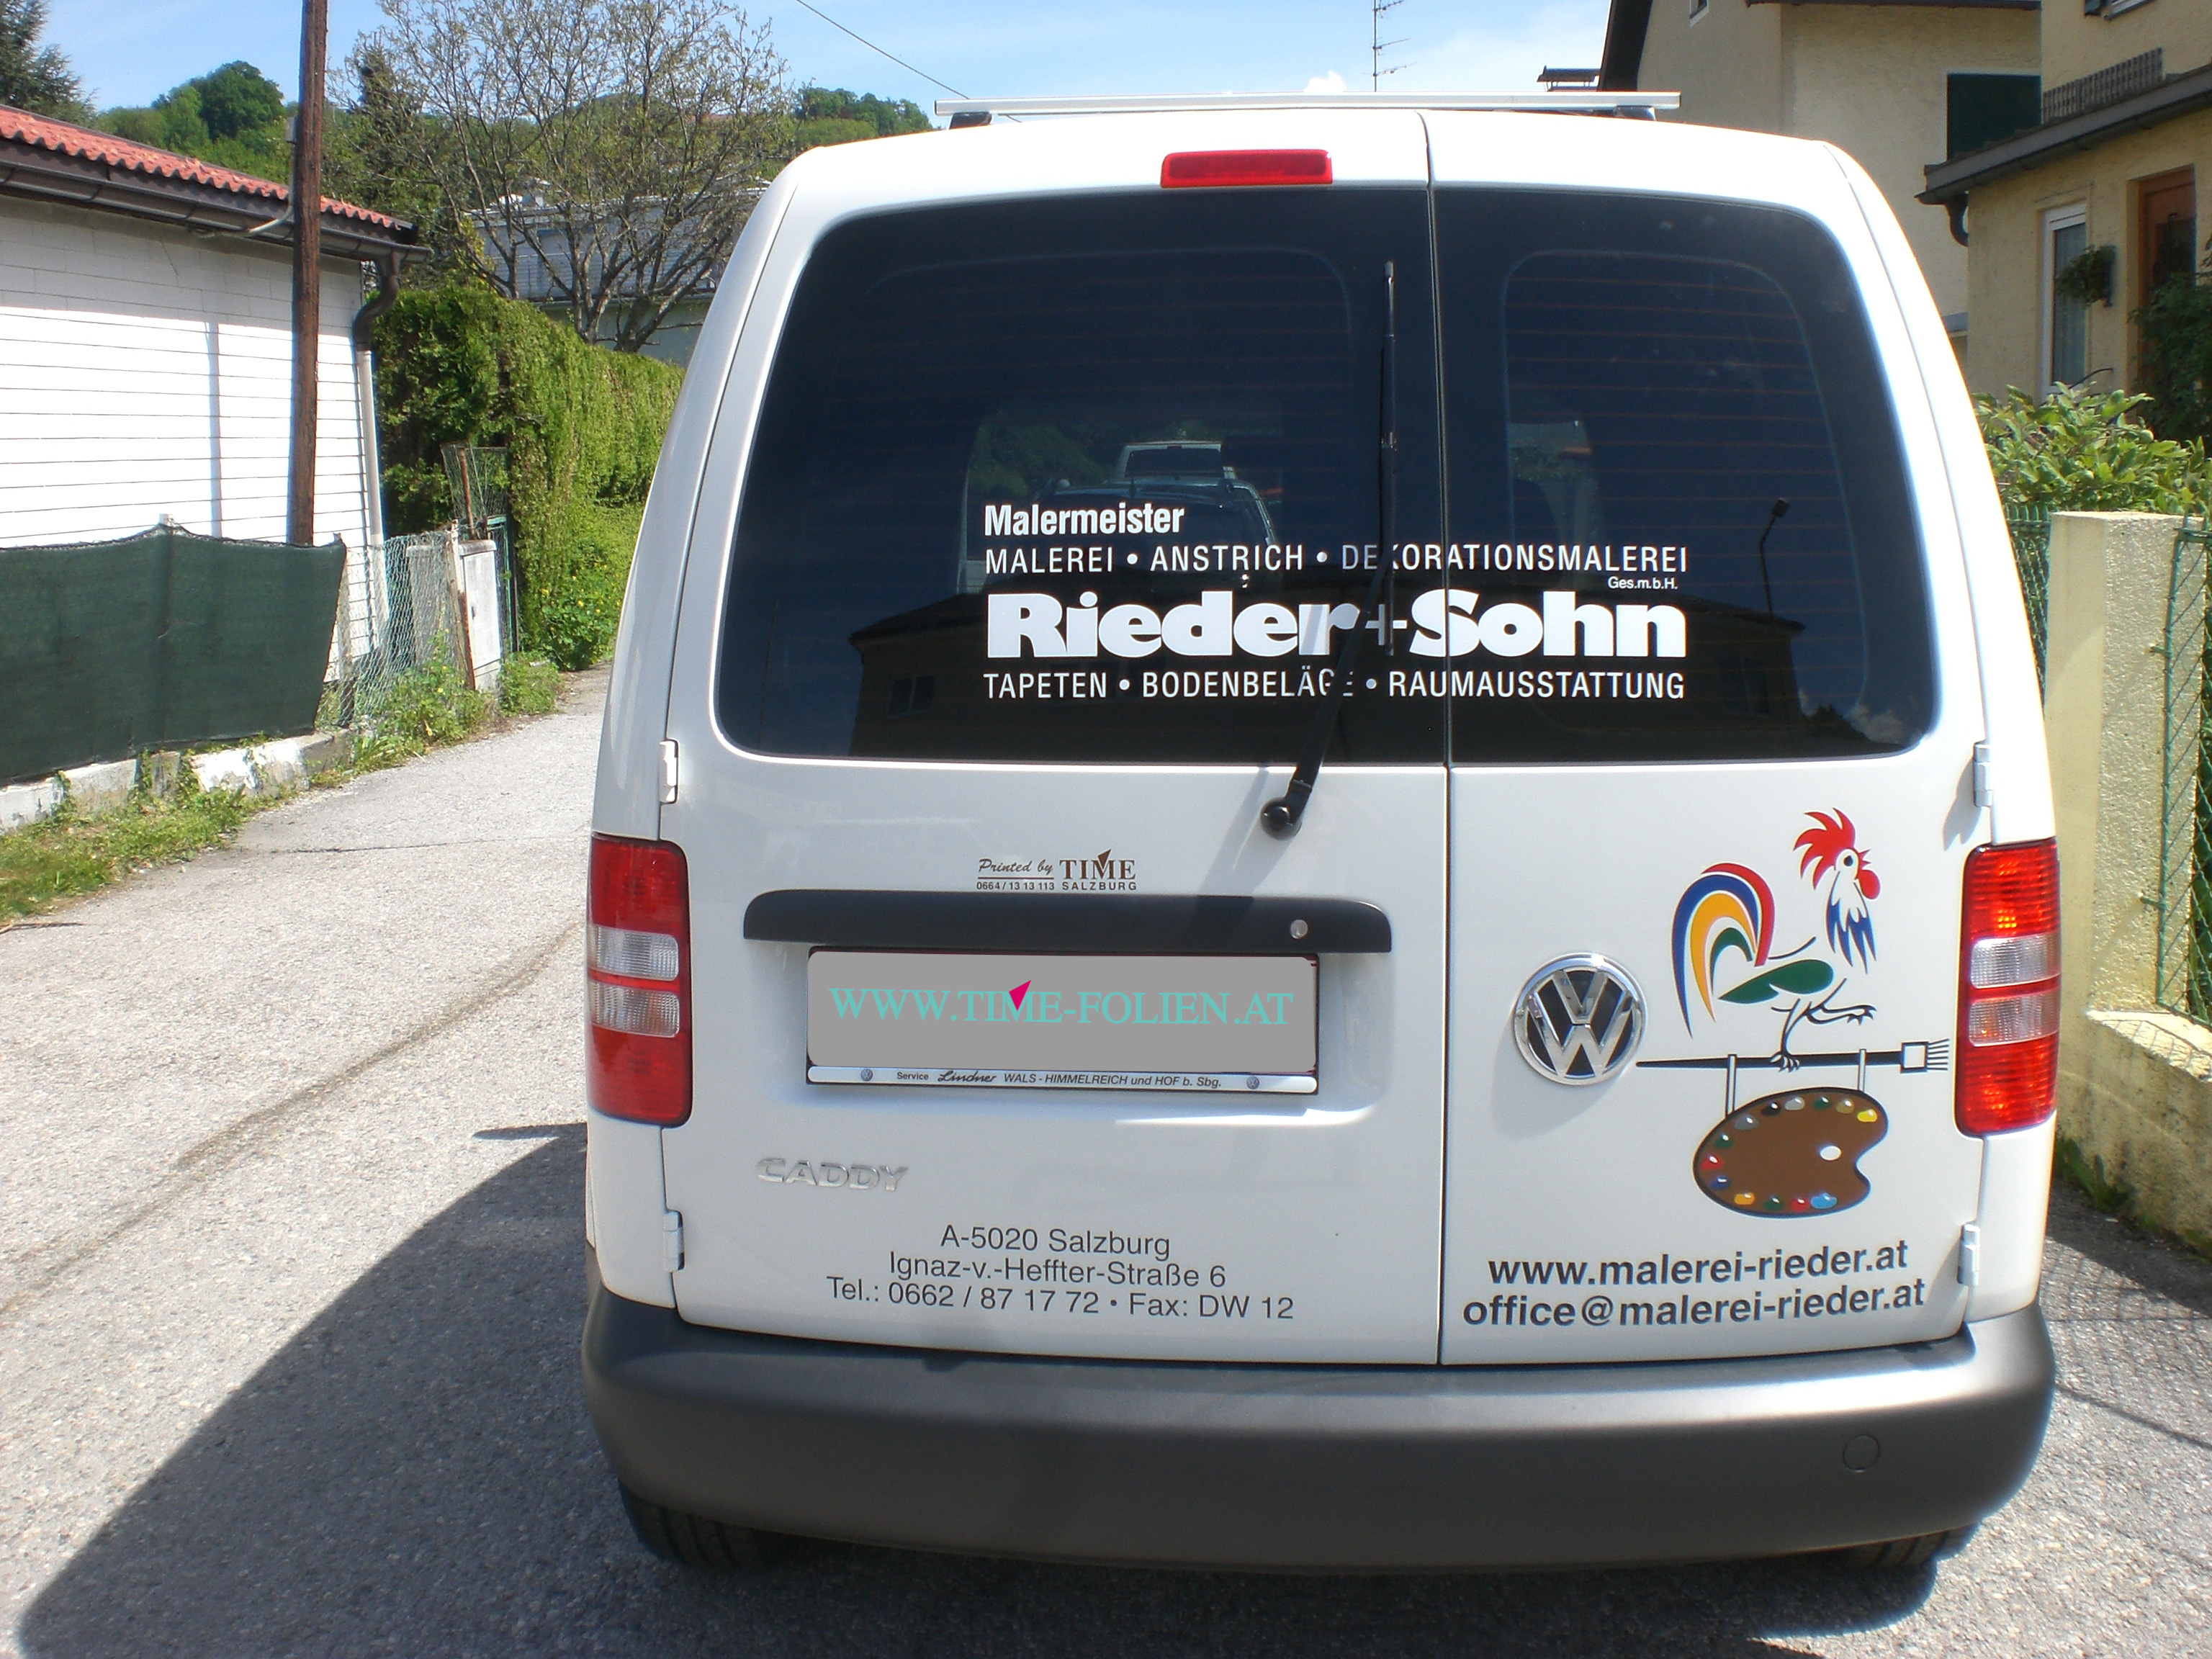 VW-Caddy-Malerei-Rieder.jpg